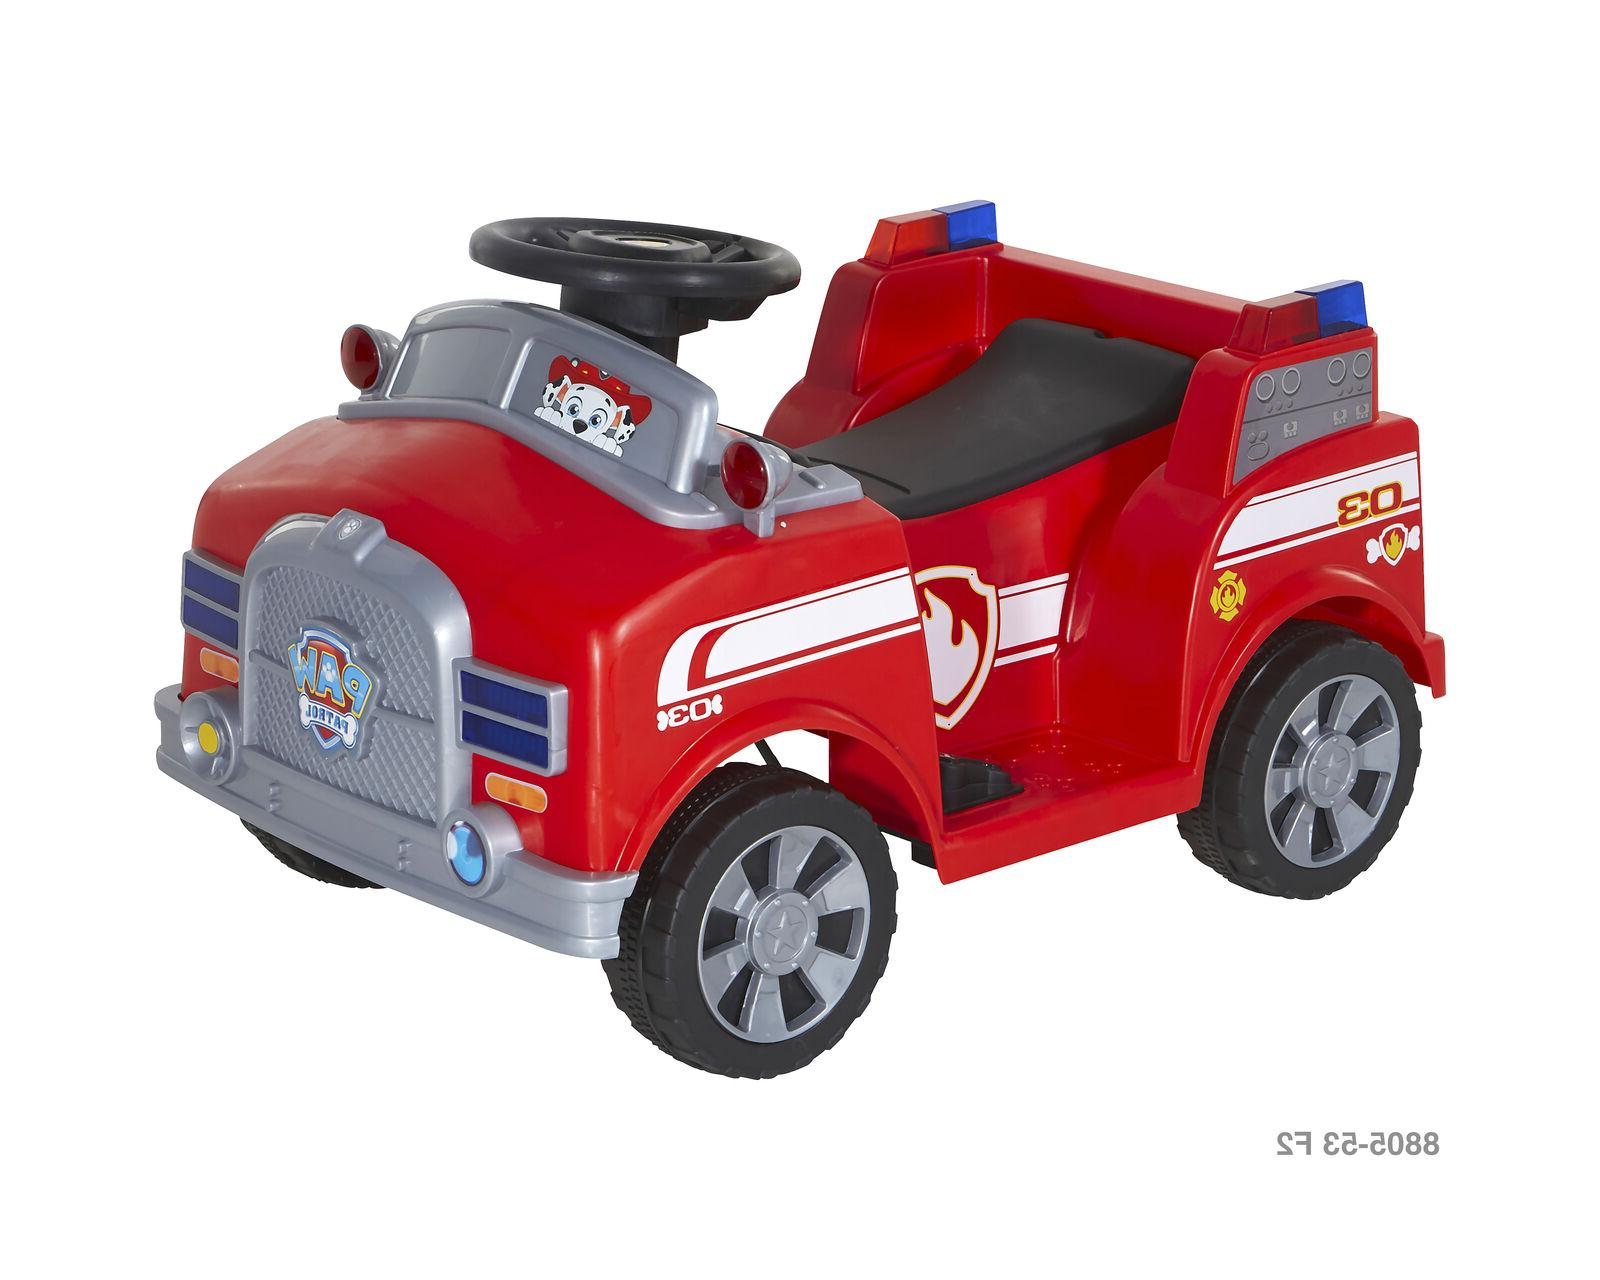 6 Volt Ride-On With Realistic